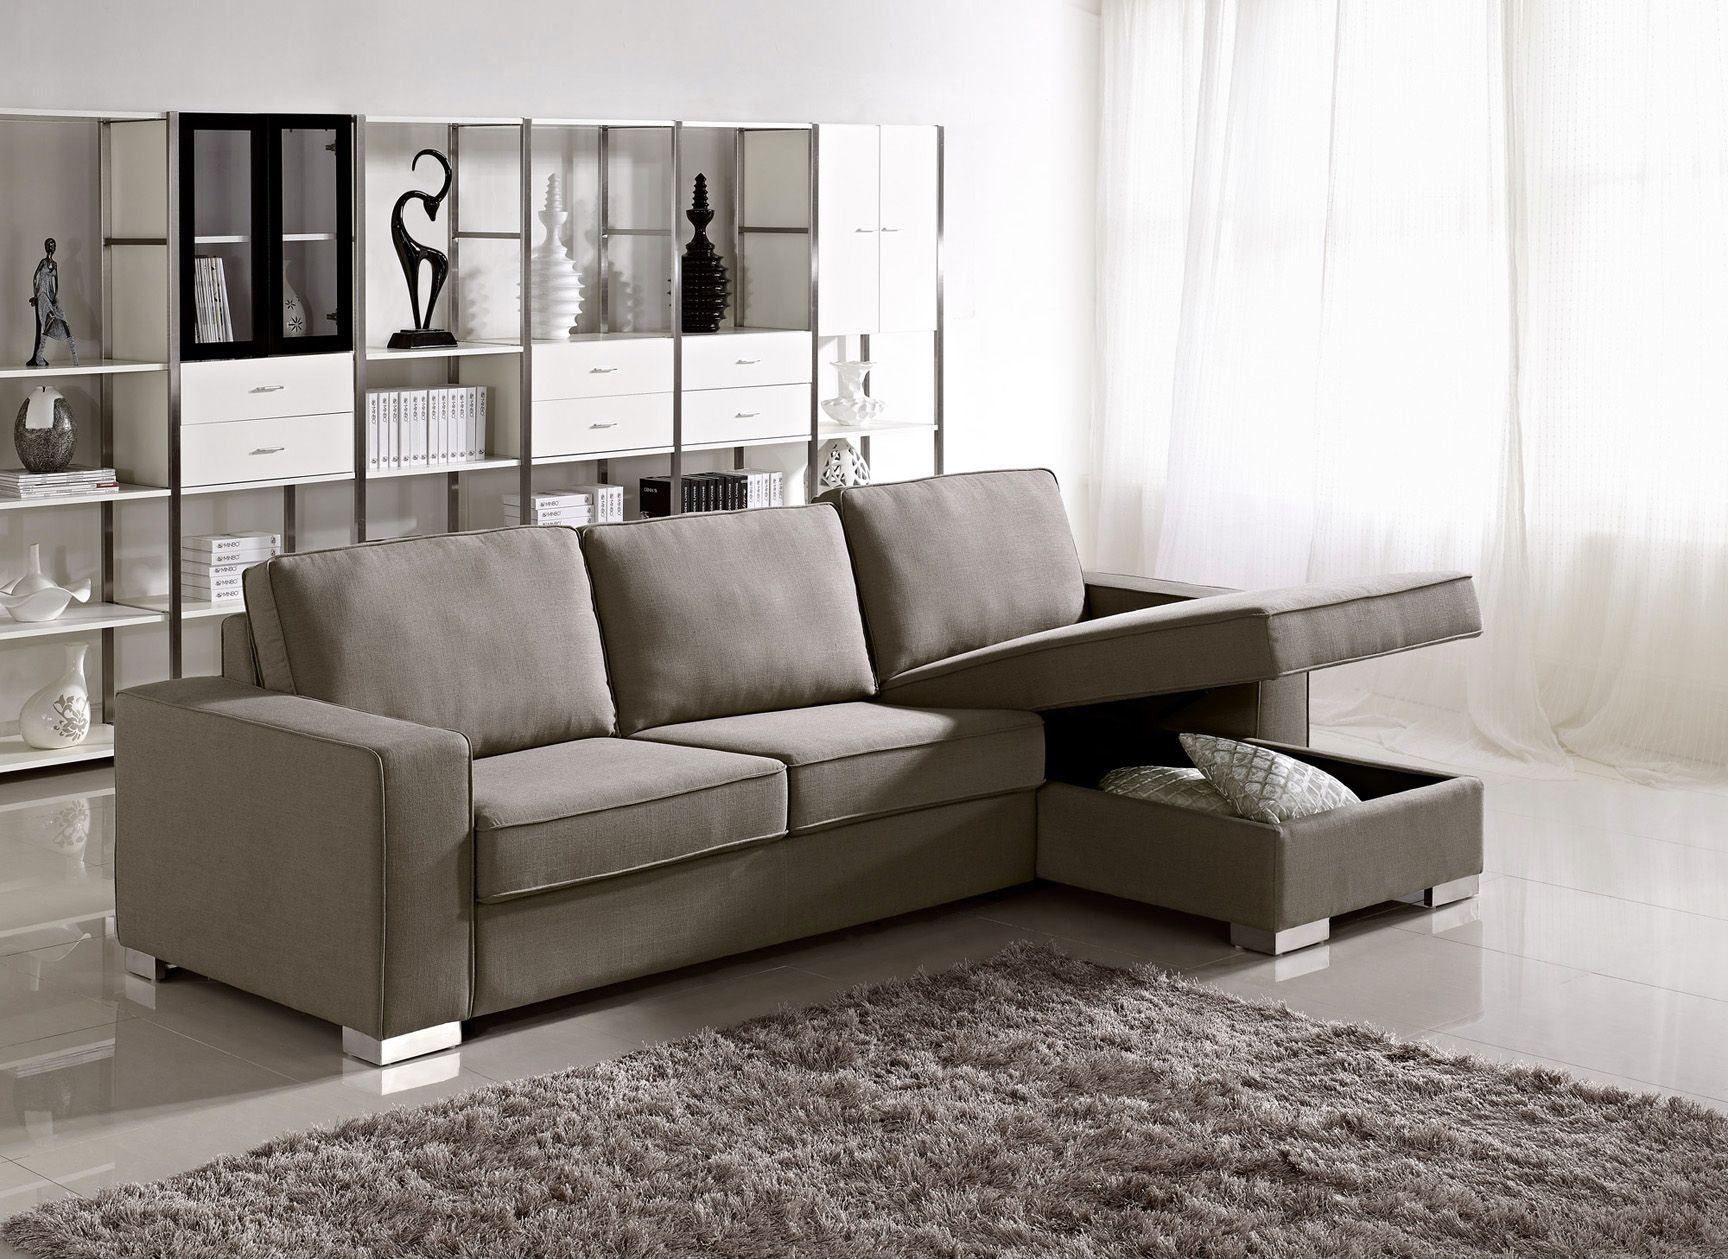 Popular Photo of Apartment Sectional Sofa With Chaise